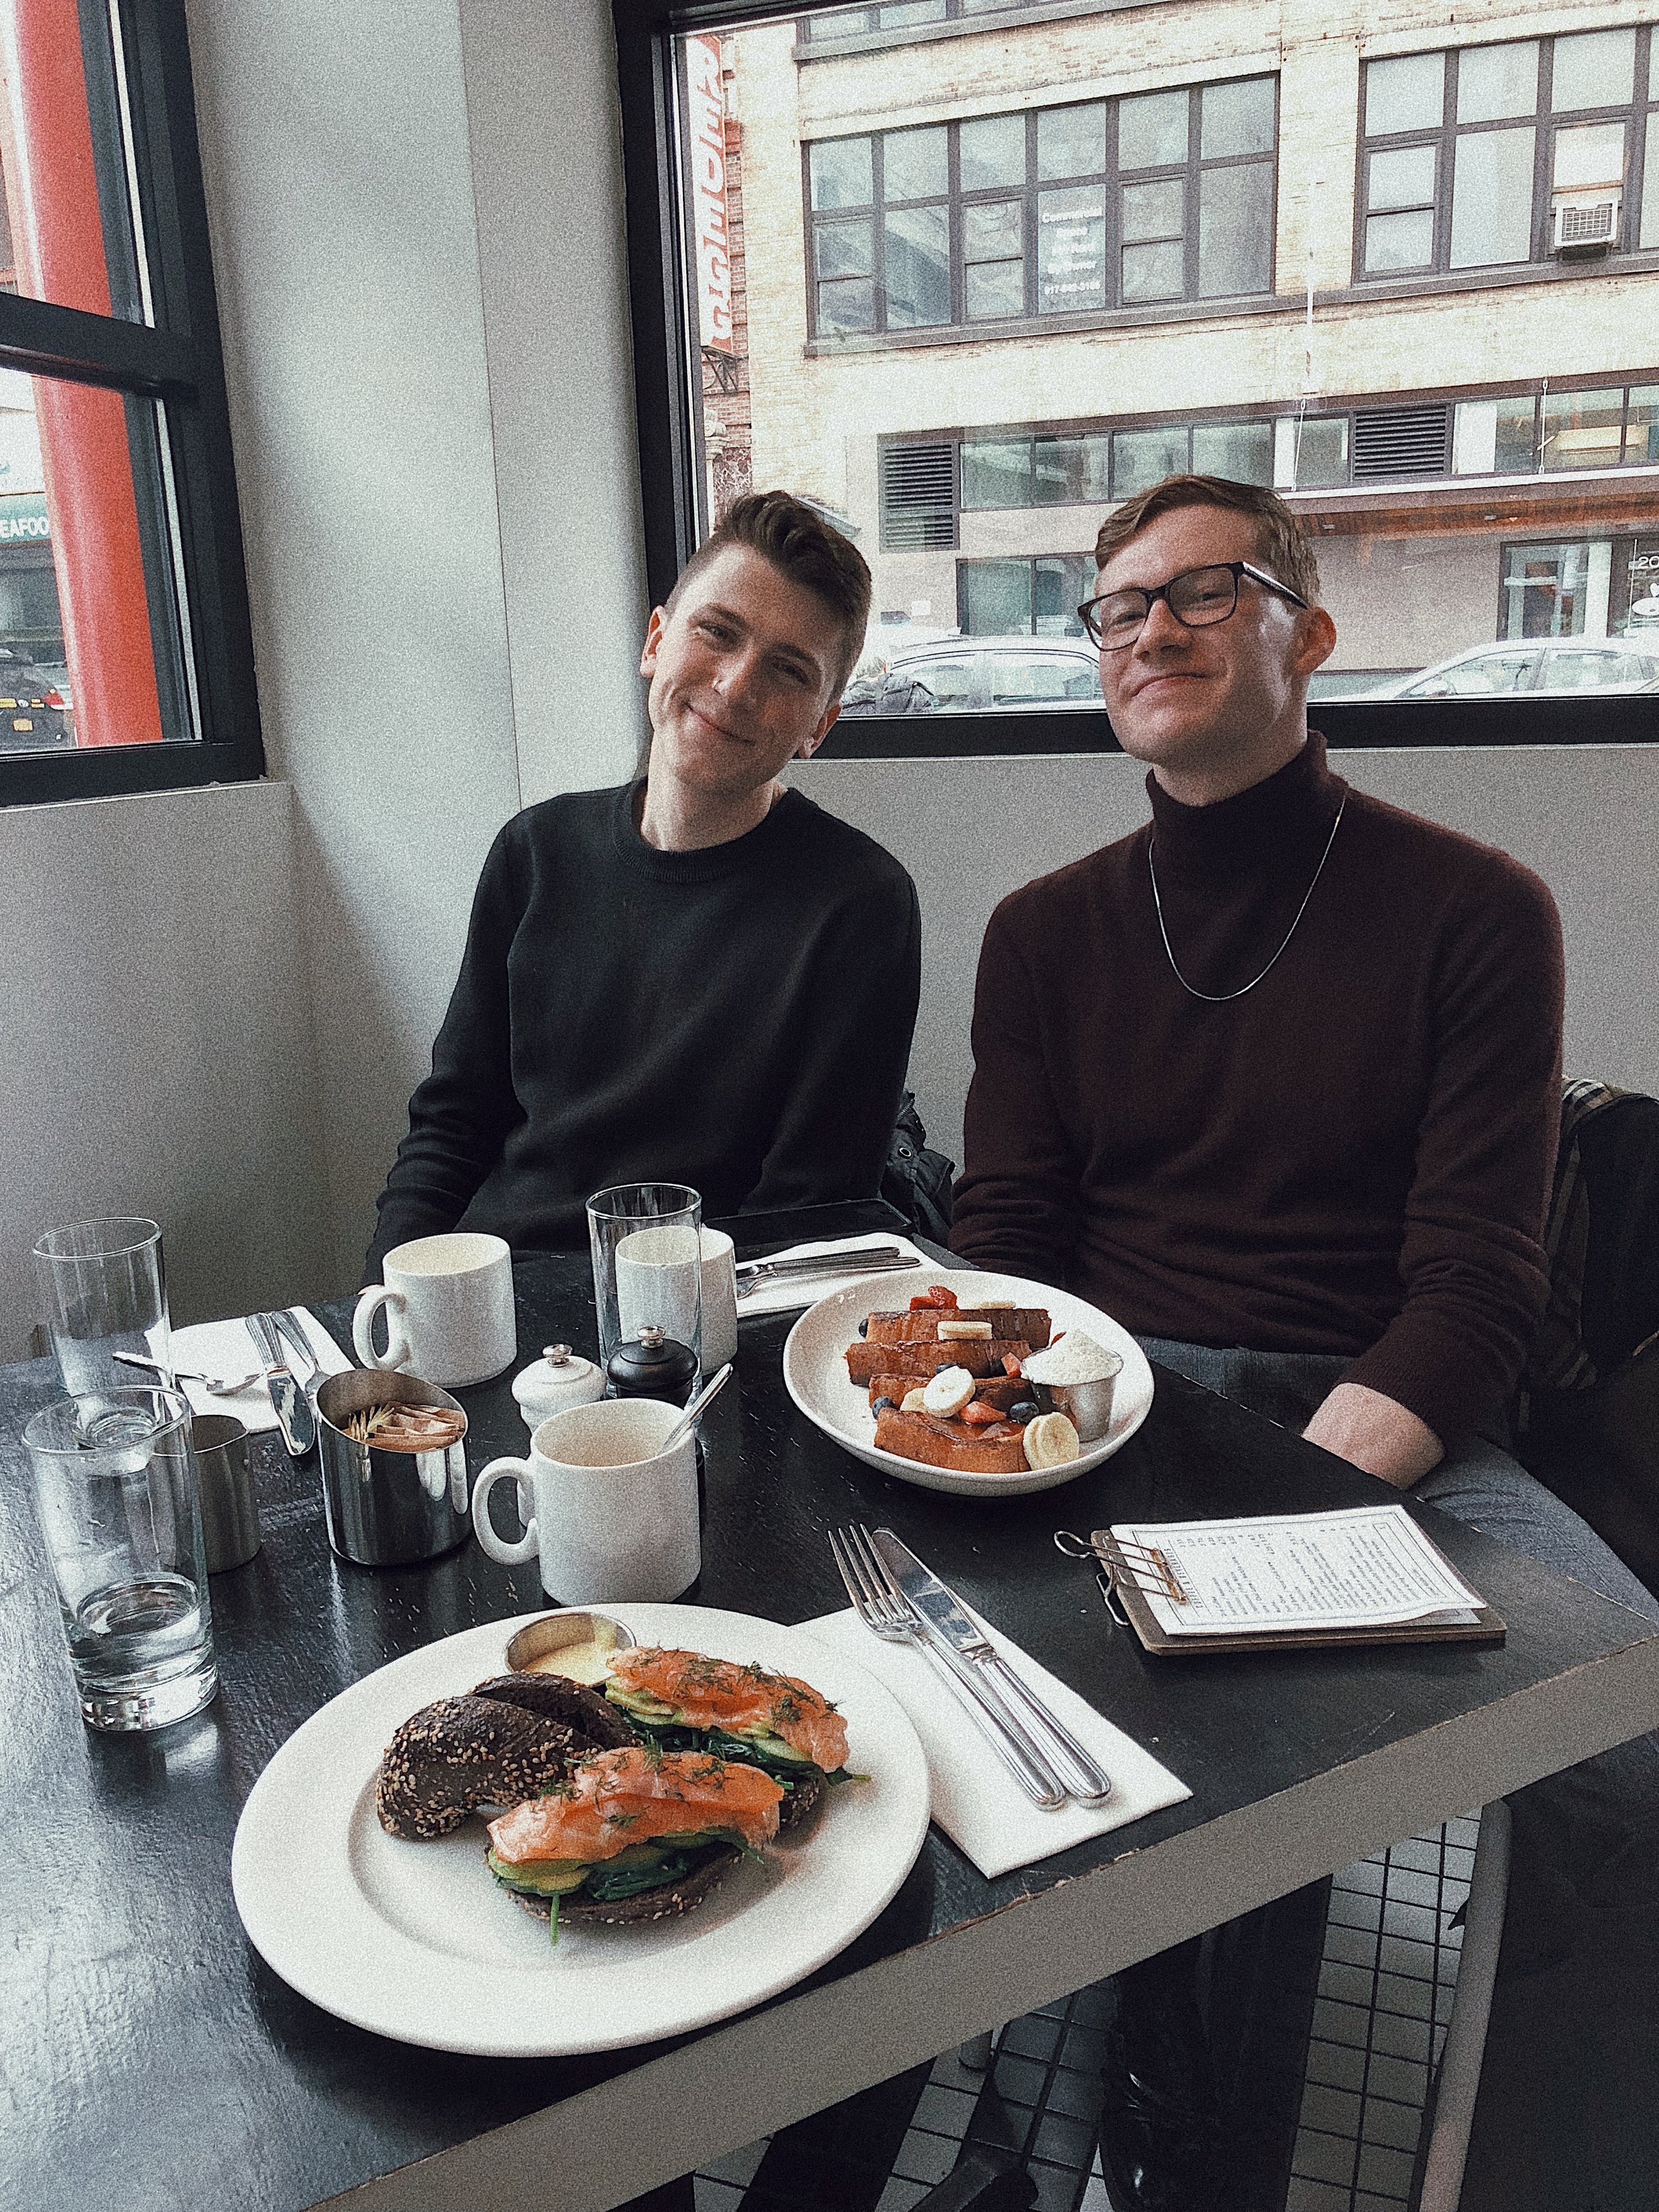 Next we have the two coolest people ever!!! Trevor (left @clevertrevor_) and Austin (right @austindwhittle) met up with me for a quick breakfast and a walk around Soho before we all went about our busy day!  Ps. Salmon bagel pictured here was AMAZING.